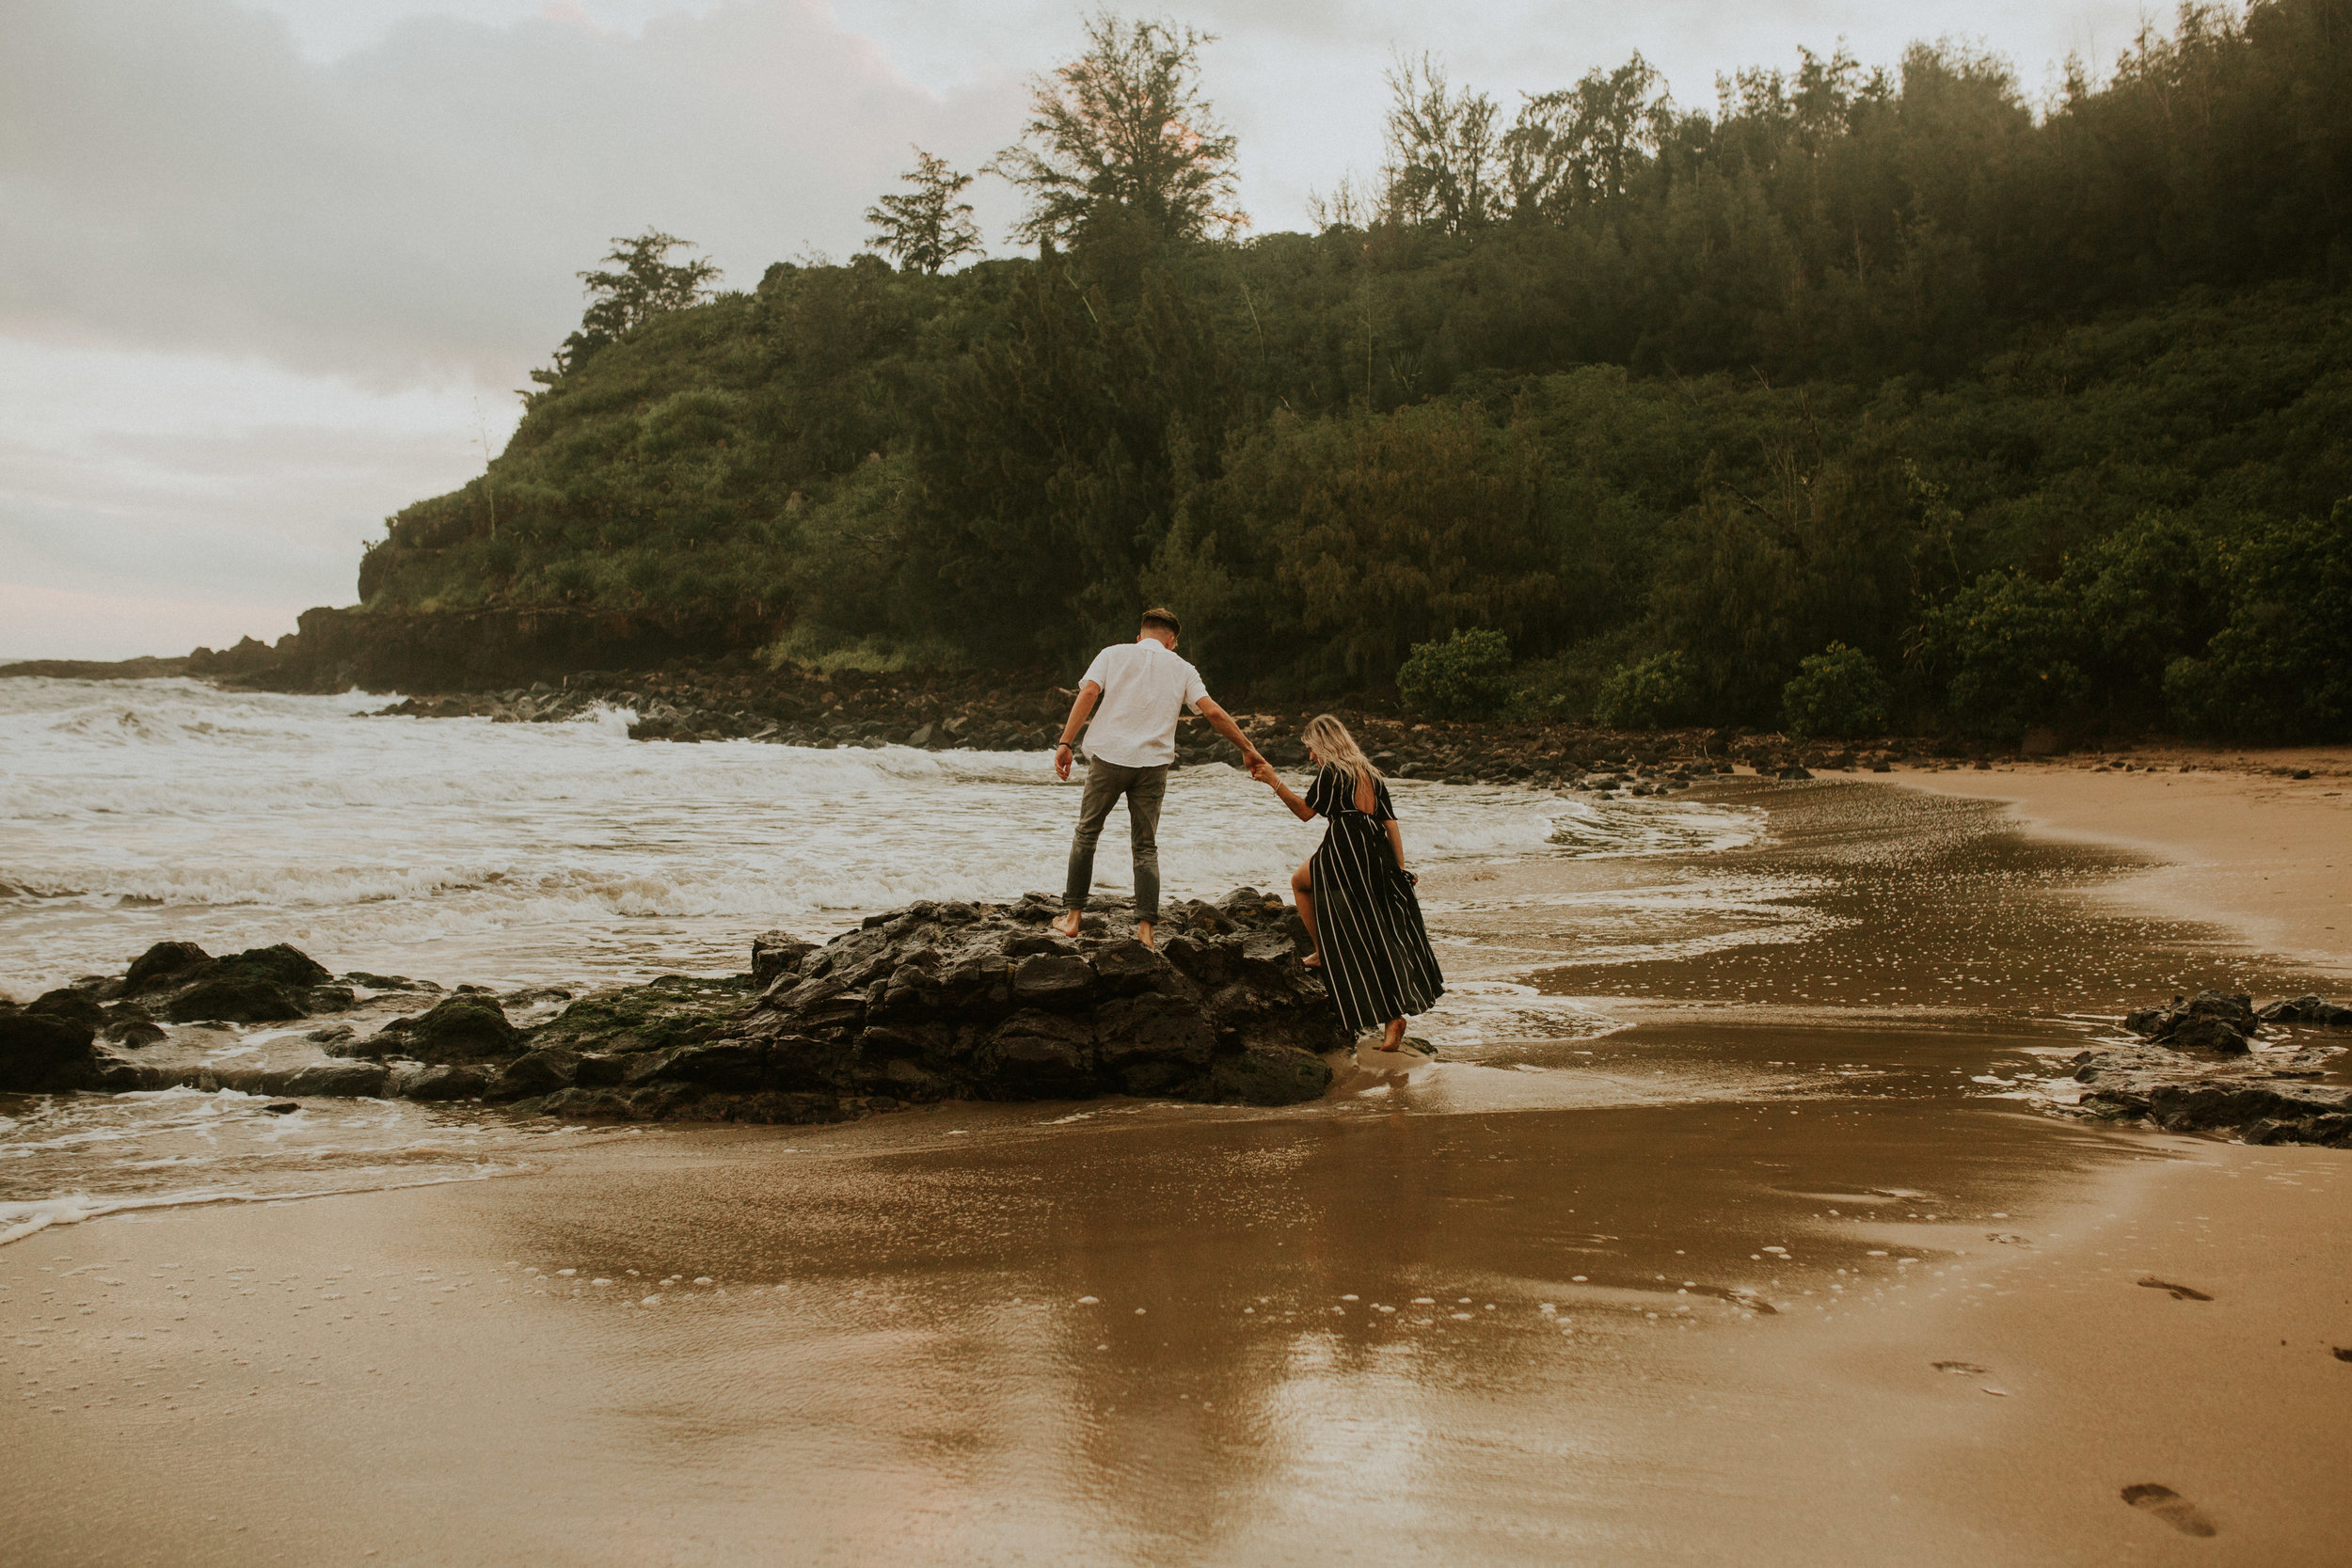 Kauai Anniversary Session -Kauai Couple's Session - hawaii Wedding Photographer - Barcelona Couple's Photographer - Seattle Intimate Wedding Photographer - Seattle Elopement Photographer - Olympic National Park Wedding Photographer - Ruby Beach Wedding Photographer - Las Vegas Elopement Photographer - Washington Intimate Wedding Photographer - PNW Elopement Photographer - Arizona Wedding Photographer - Ireland Wedding Photographer - Scotland Wedding Photographer - kauai Wedding Phographer